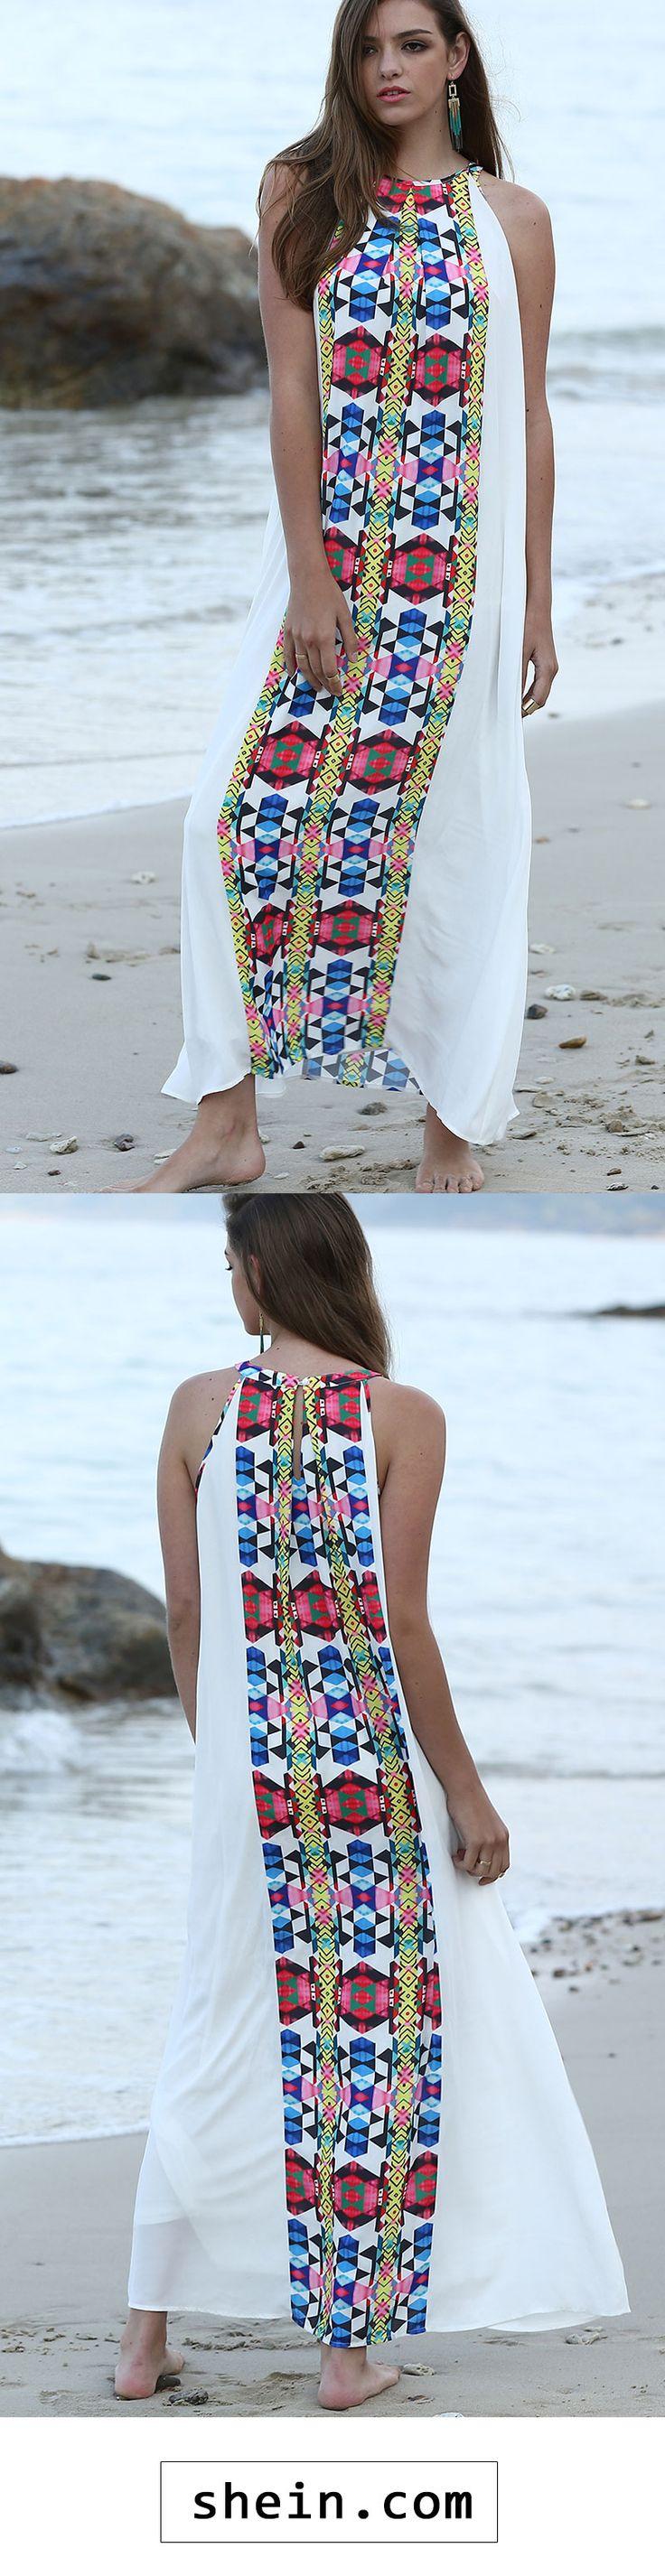 Gorgeous! Great for summer and beach.